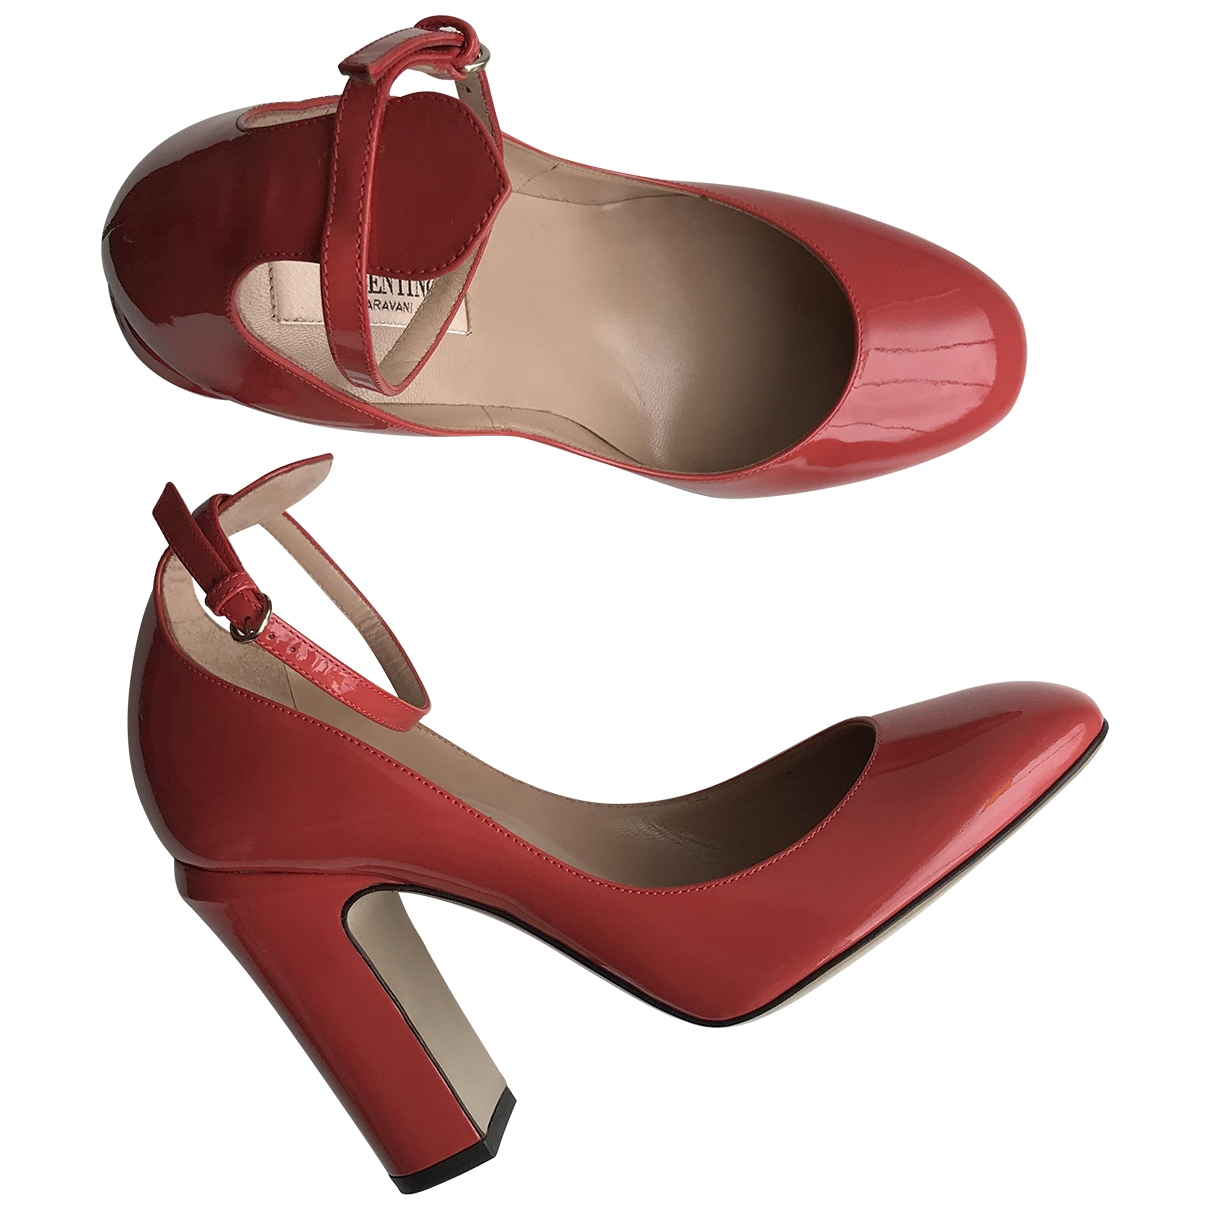 Valentino Garavani Tango Red Patent leather Heels for Women 37 EU